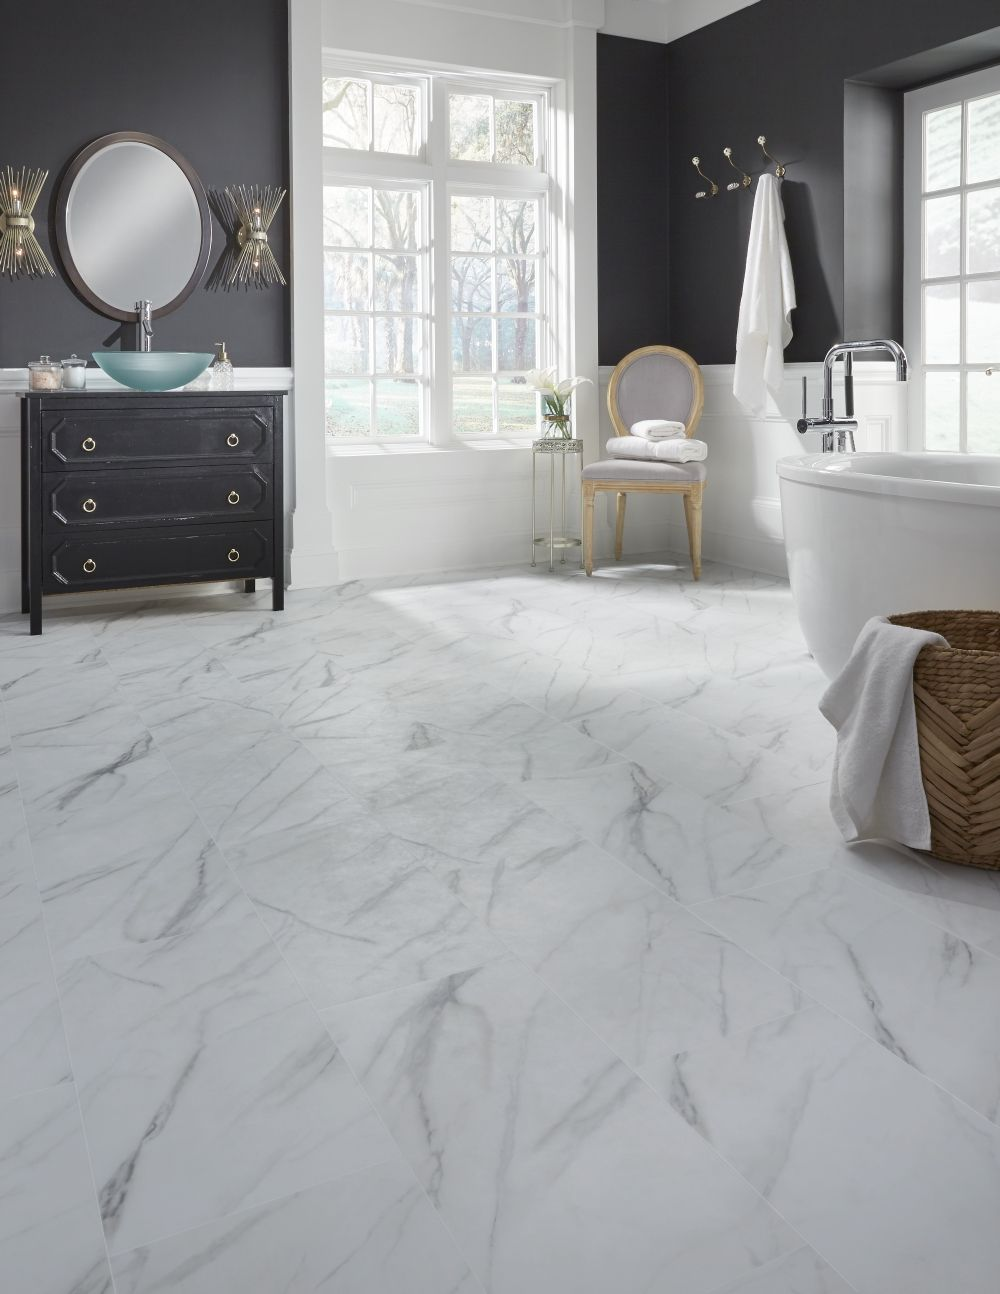 Pin by Mannington Floors on Hot Product Picks | Pinterest | Luxury ...